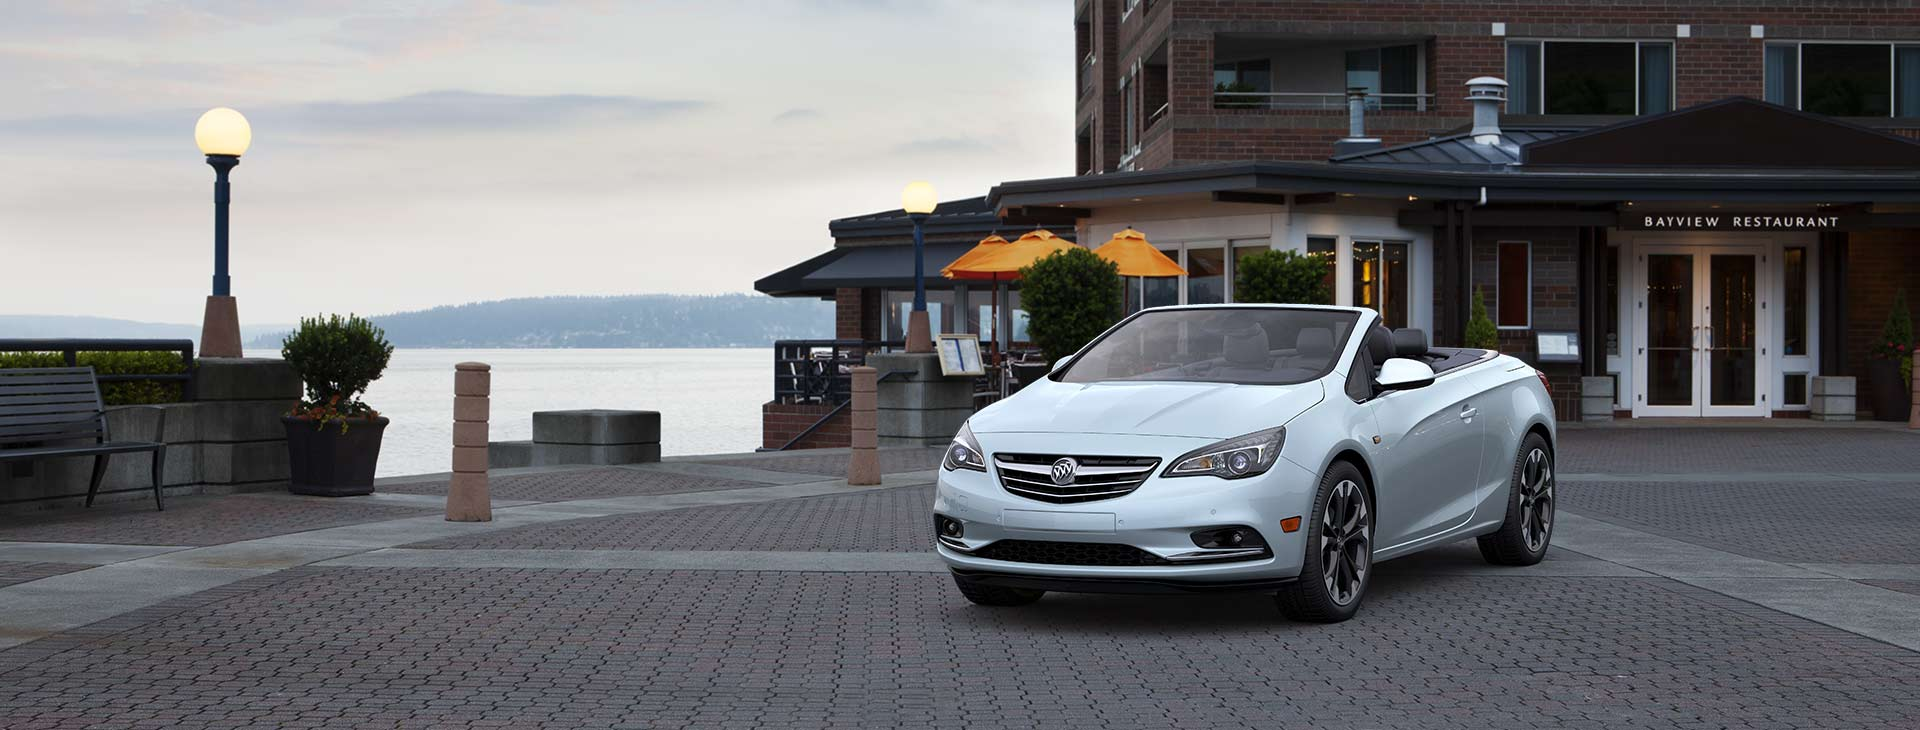 New Buick Cascada   Buy  Lease  or Finance   Gainesville  Florida New Buick Cascada Lease and Finance Offers Gainesville FL  image1  image2